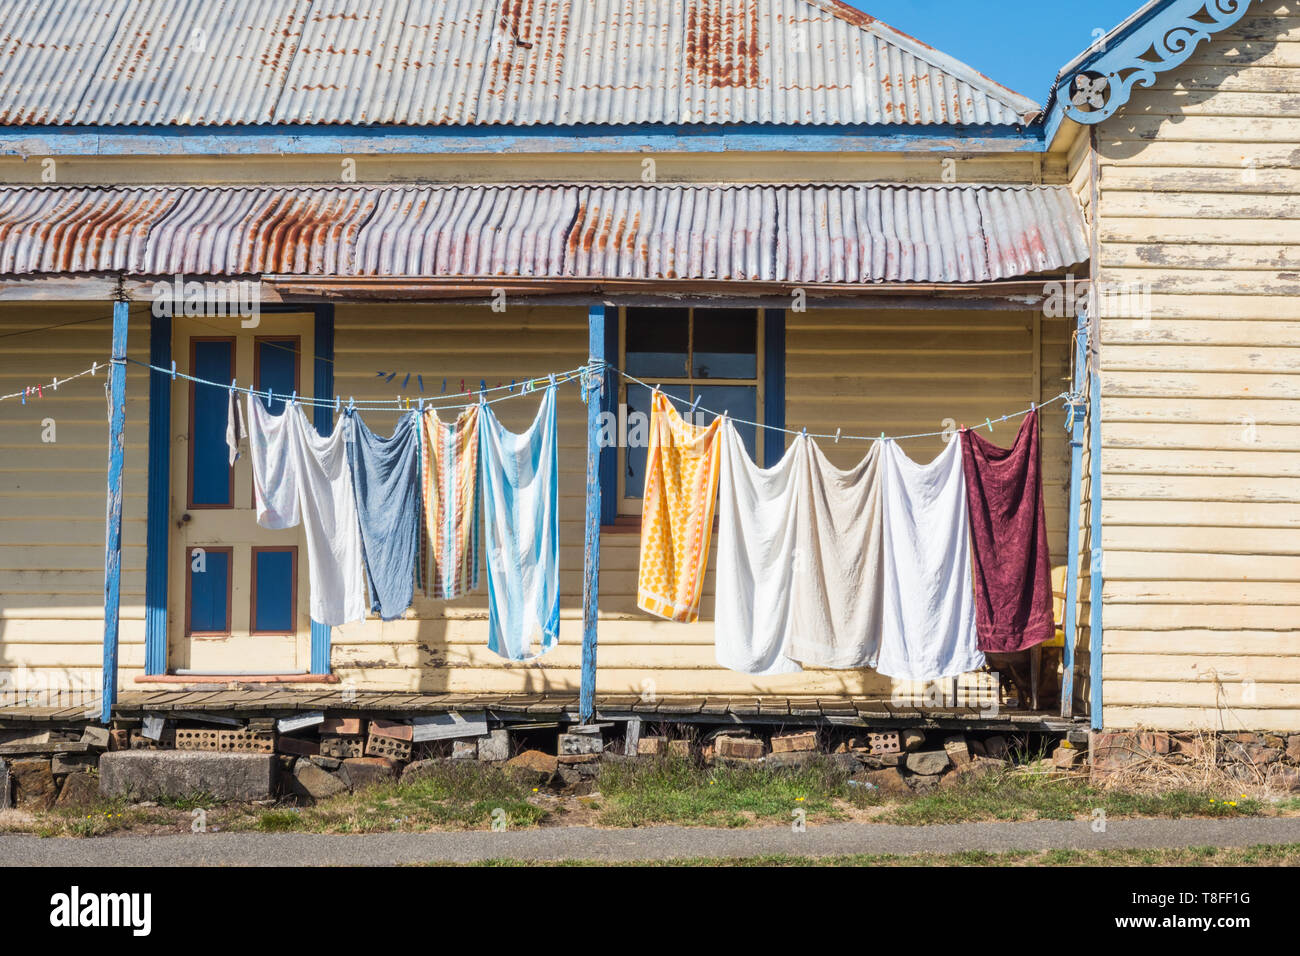 Washing day at the small historic village of Carrick in Tasmania, Australia. - Stock Image